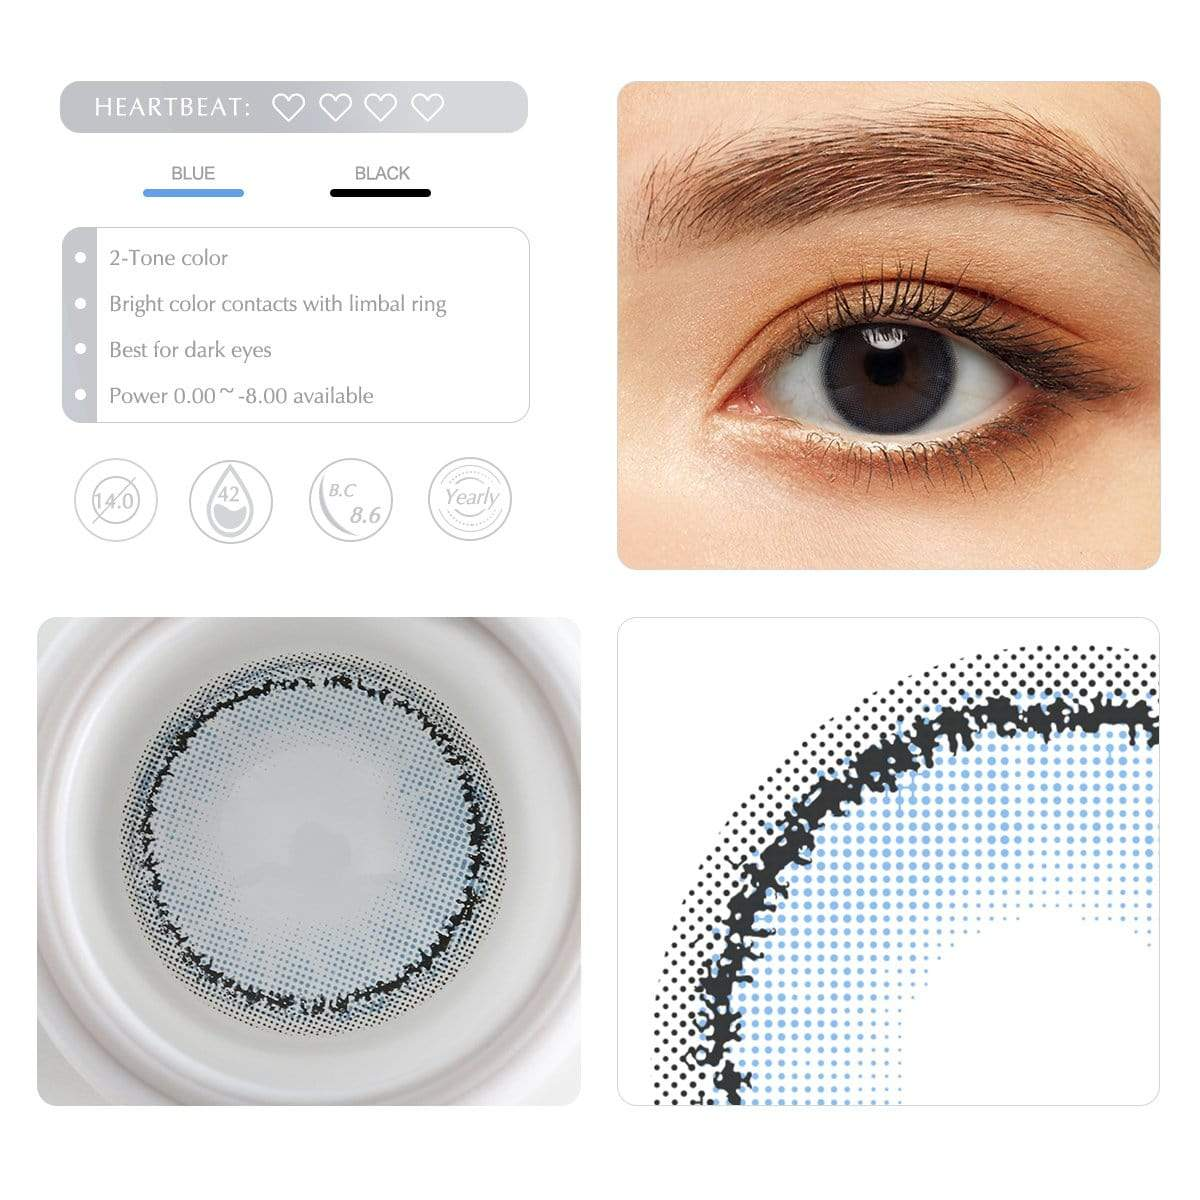 Sky bue contact lens details display renderings